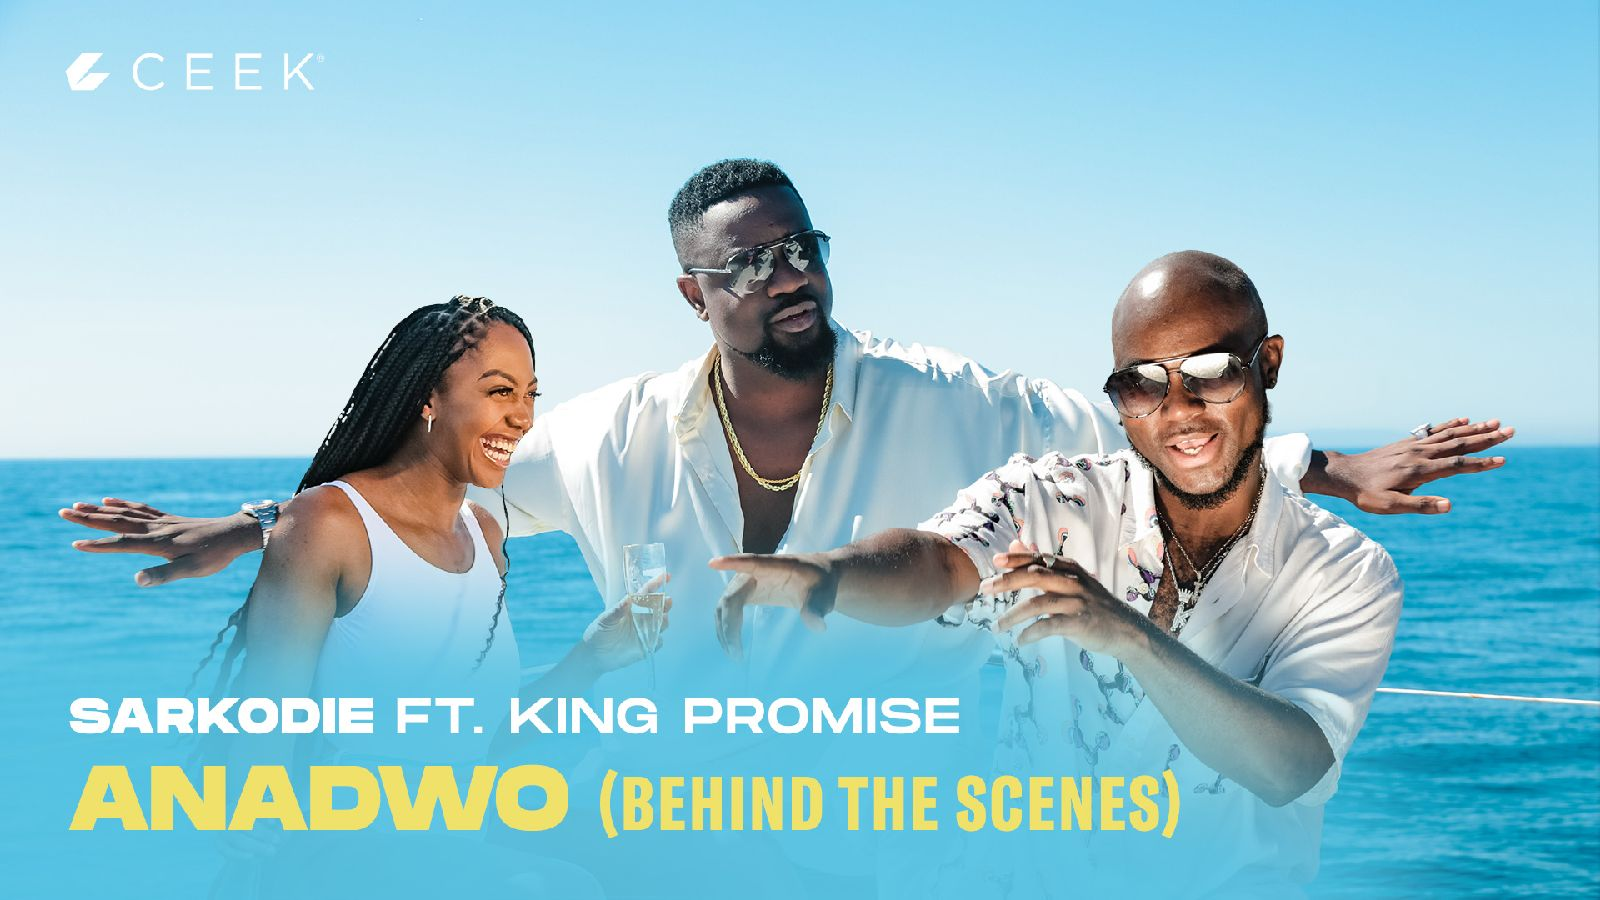 Anadwo featuring King Promise - Behind The Scenes ceek.com